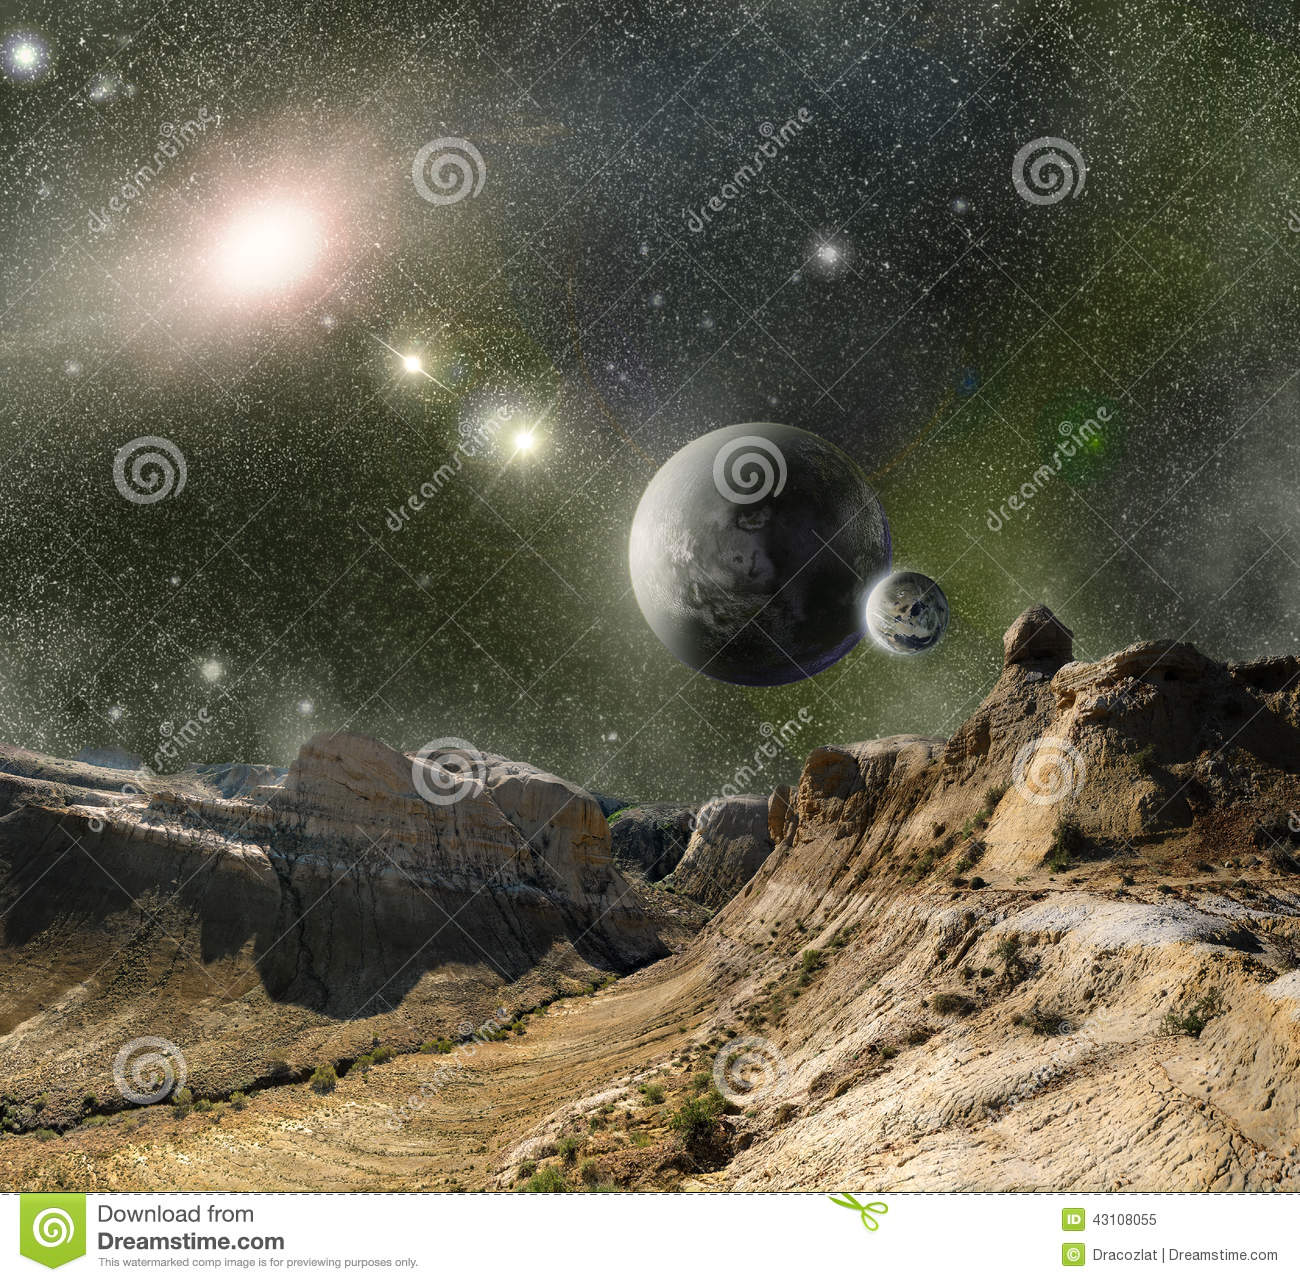 Mountains and cosmos space stock illustration image for Outer space landscape